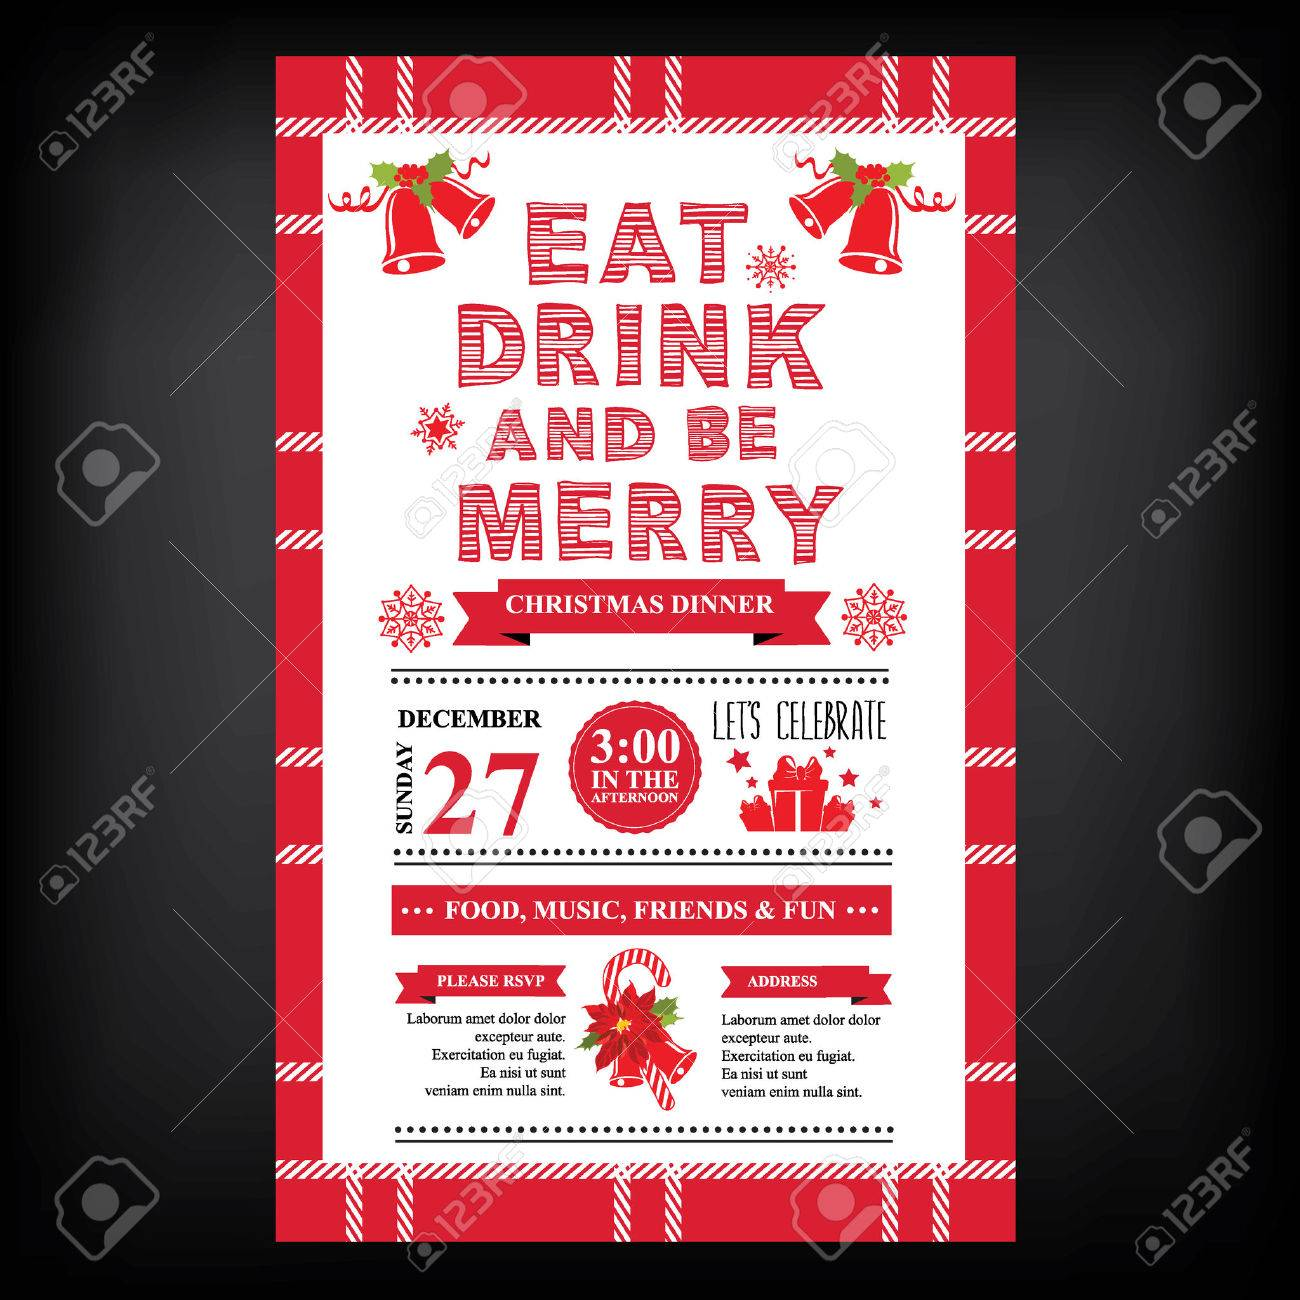 Christmas Restaurant And Party Menu, Invitation. Royalty Free ...